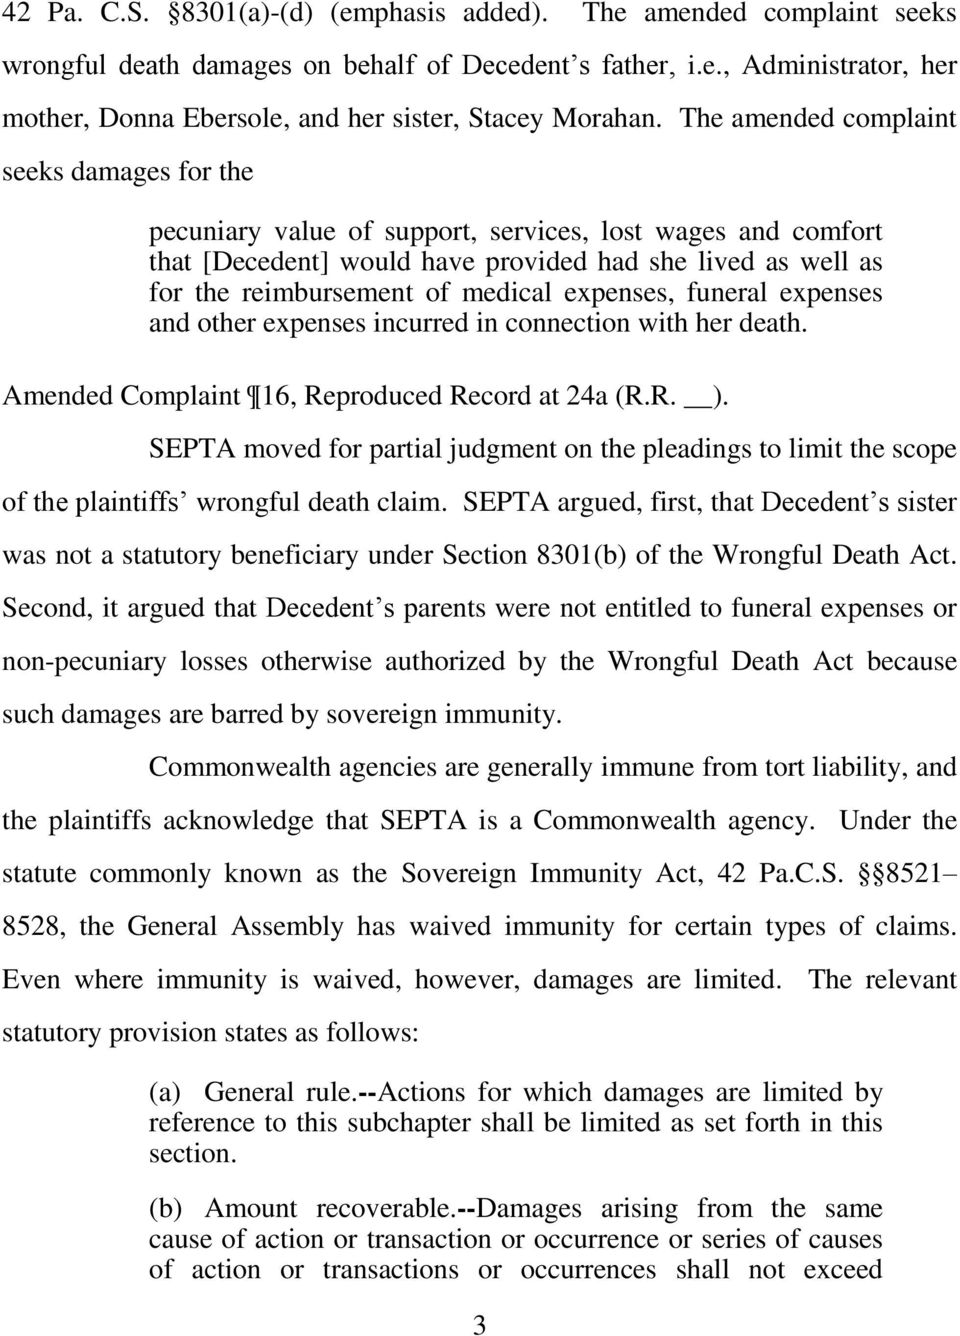 expenses, funeral expenses and other expenses incurred in connection with her death. Amended Complaint 16, Reproduced Record at 24a (R.R. ).